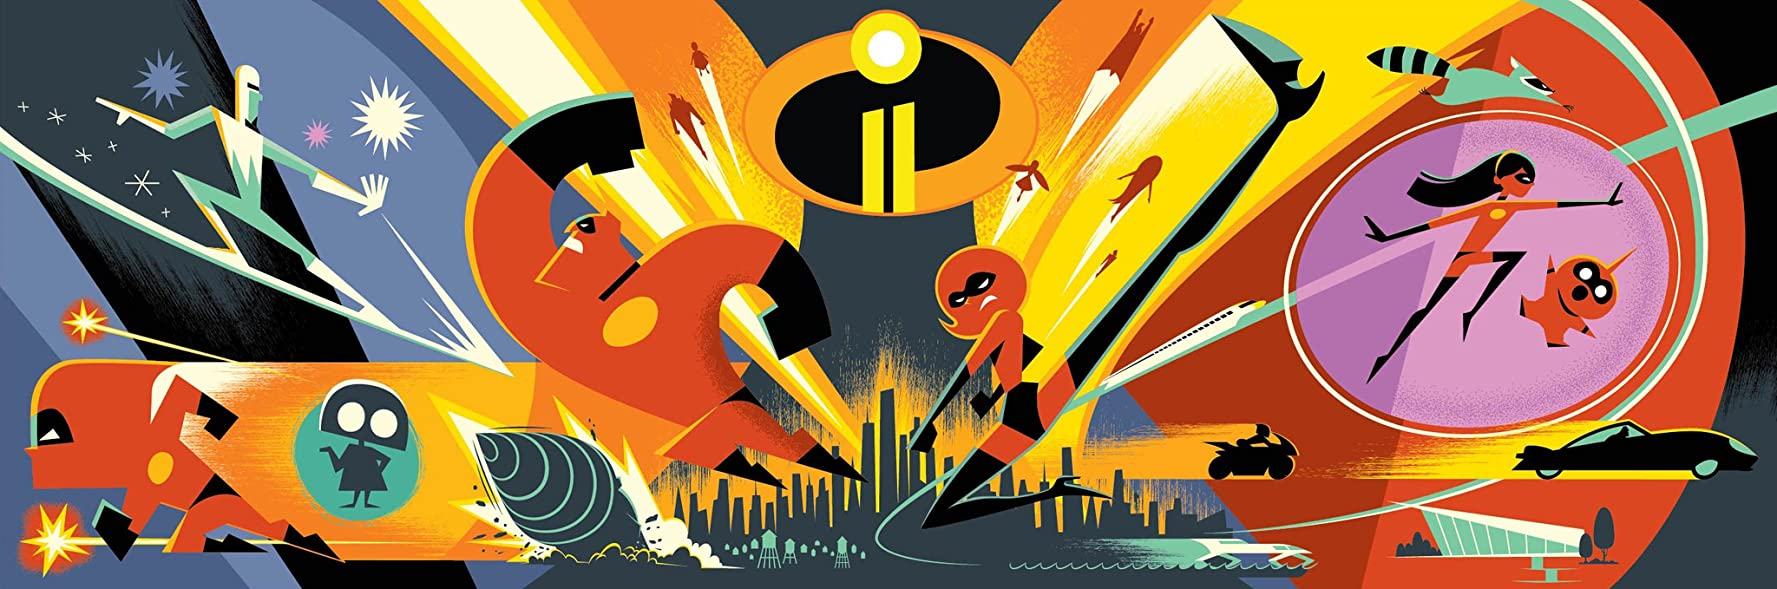 Incredibles 2 (2018) torrent download